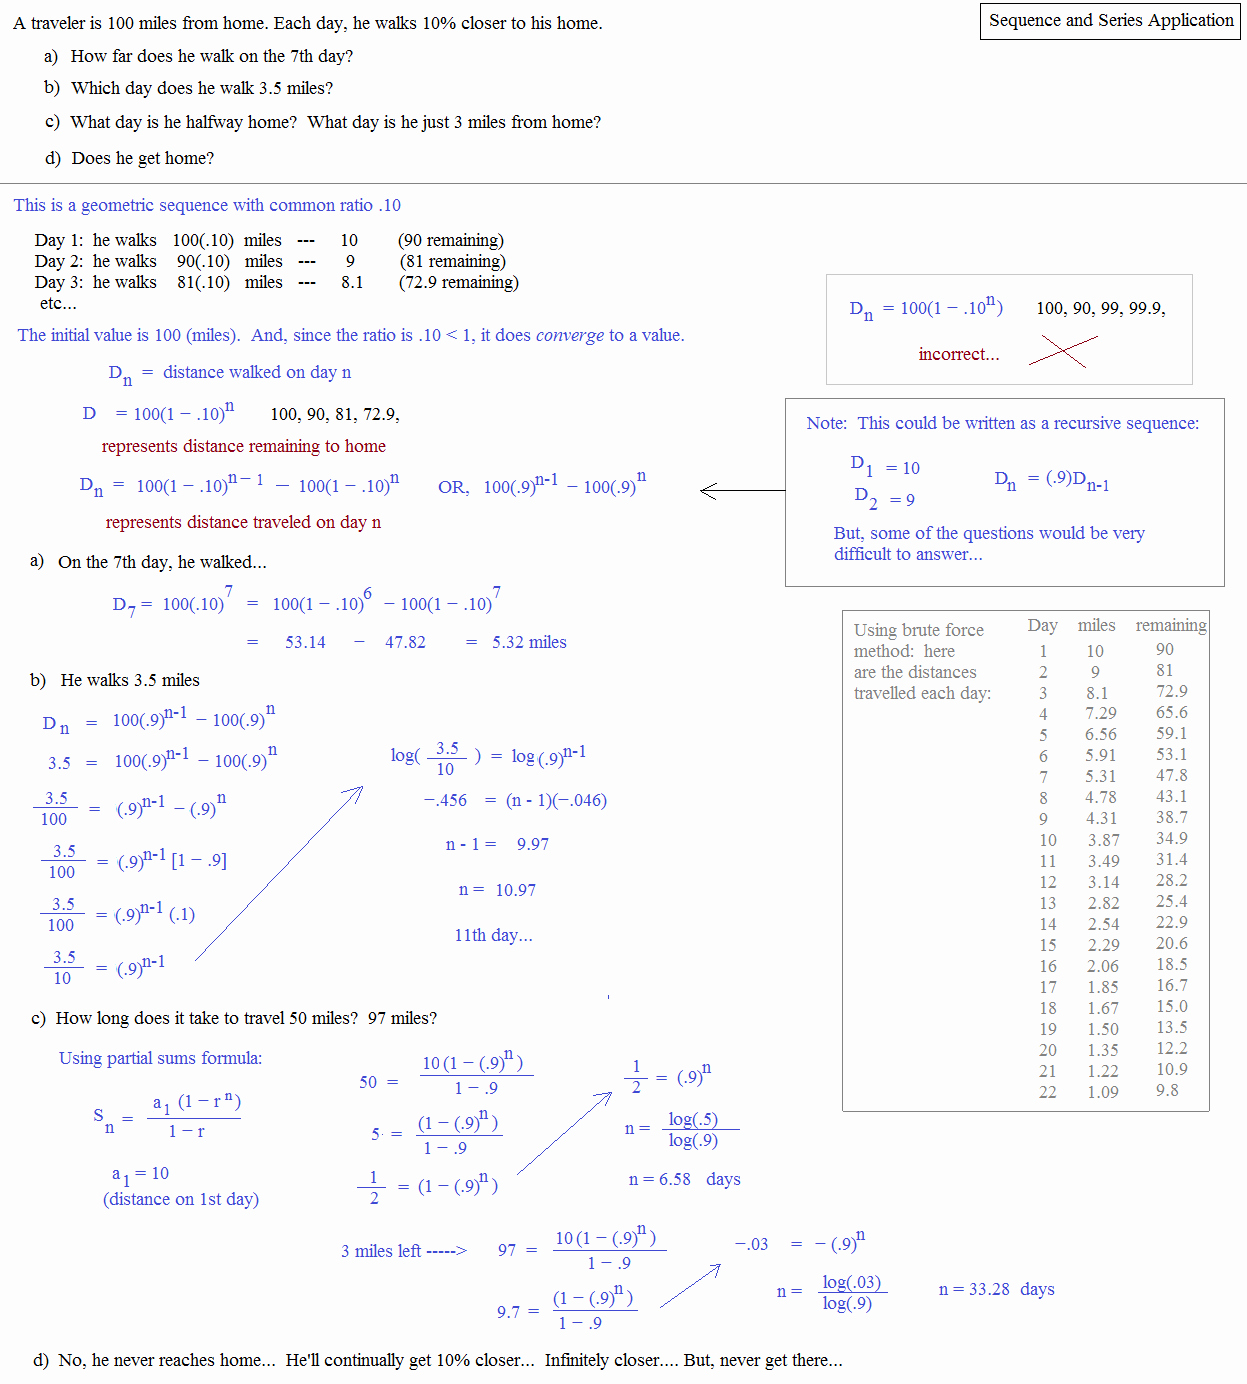 Arithmetic Sequence Worksheet Algebra 1 Fresh Arithmetic Sequence Grade 11 Arithmetic Maze and